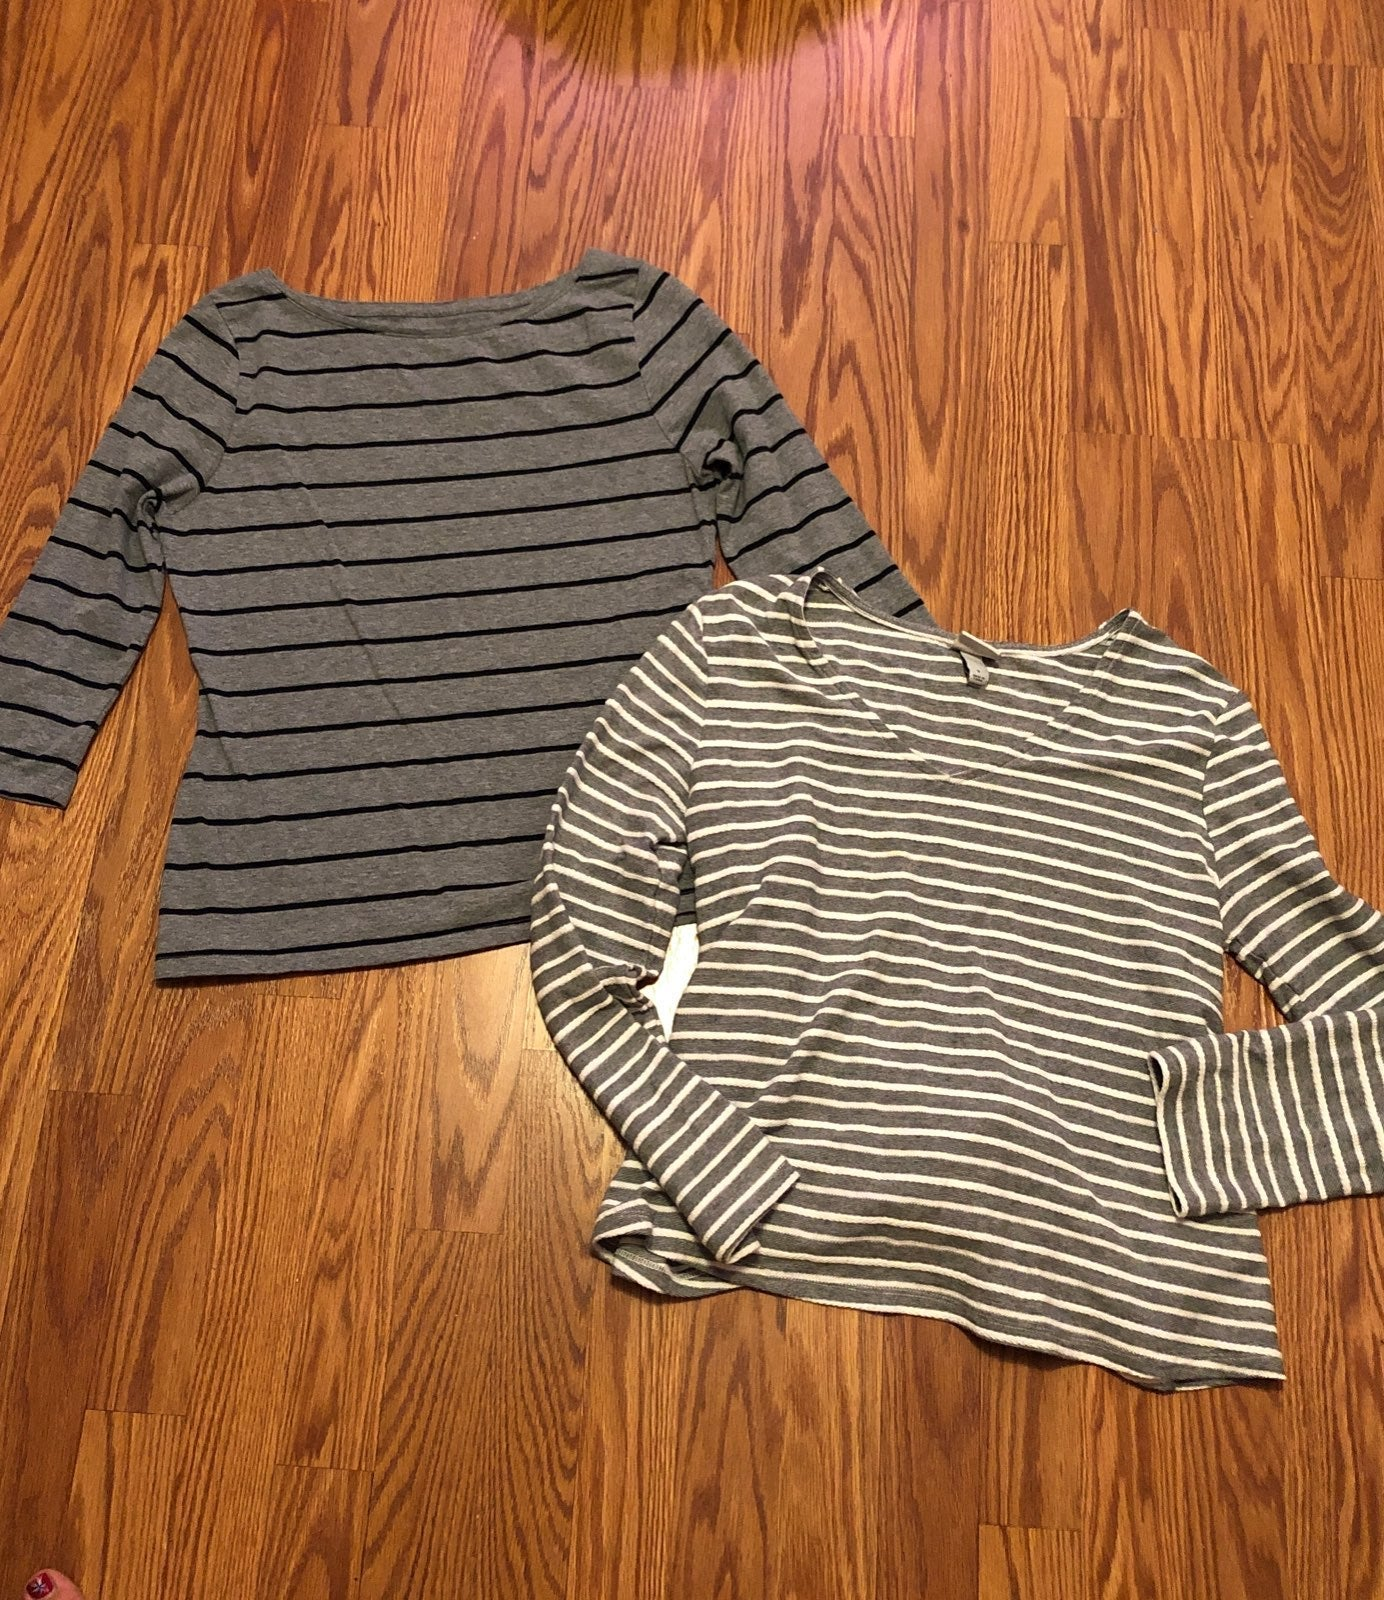 Lot of 2 Striped Shirts, Small